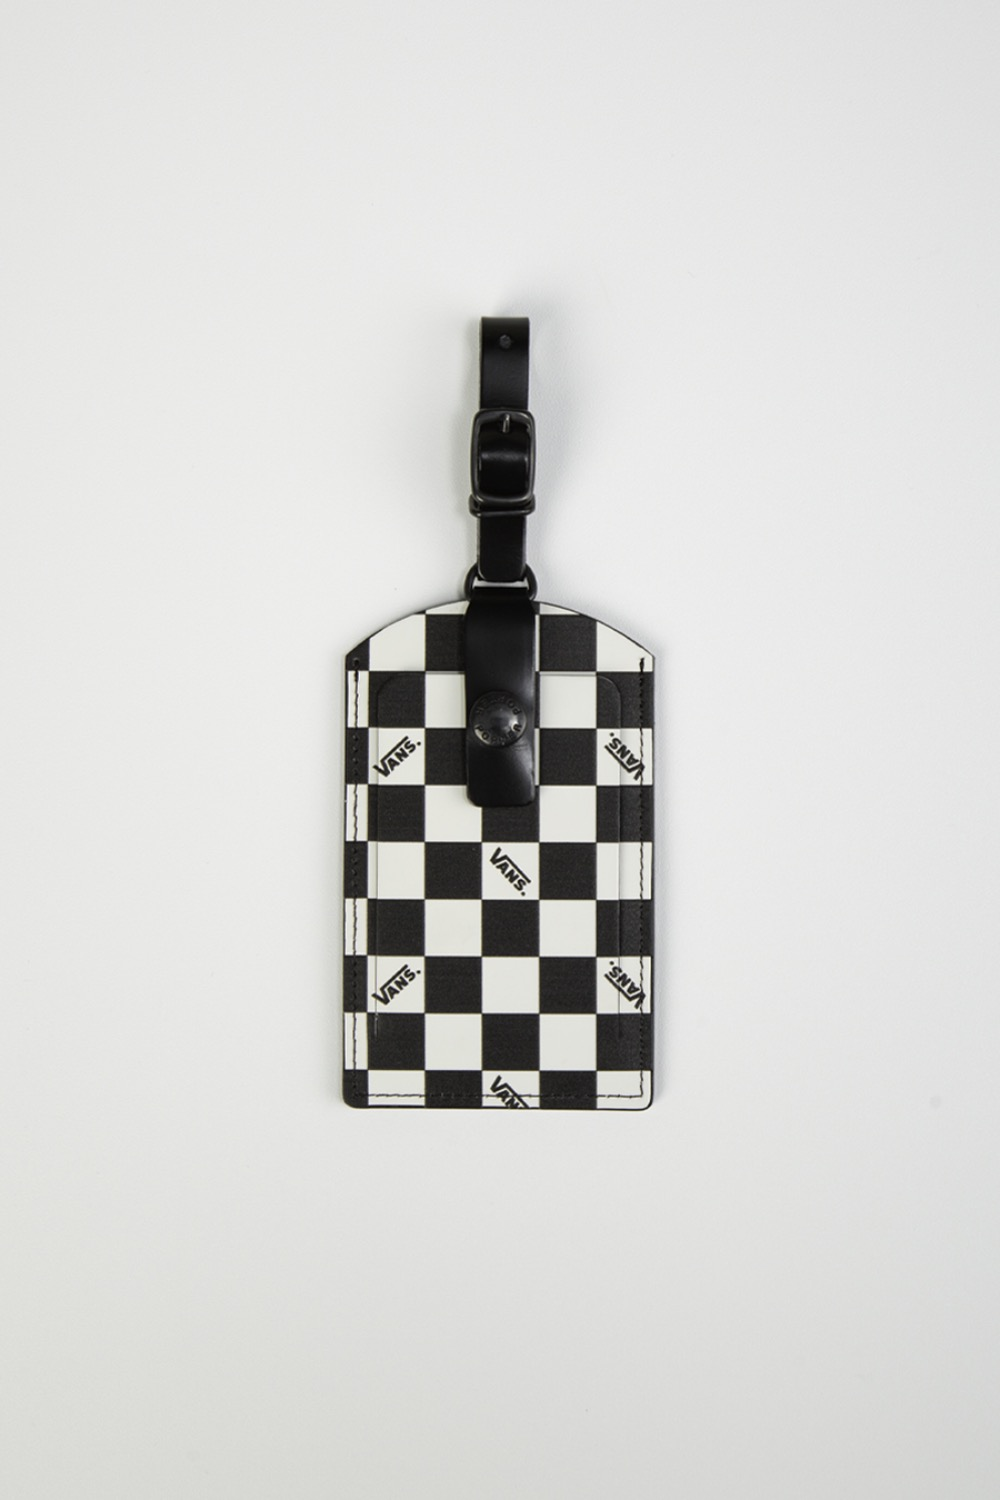 VANS X PORTER LUGGAGE TAG